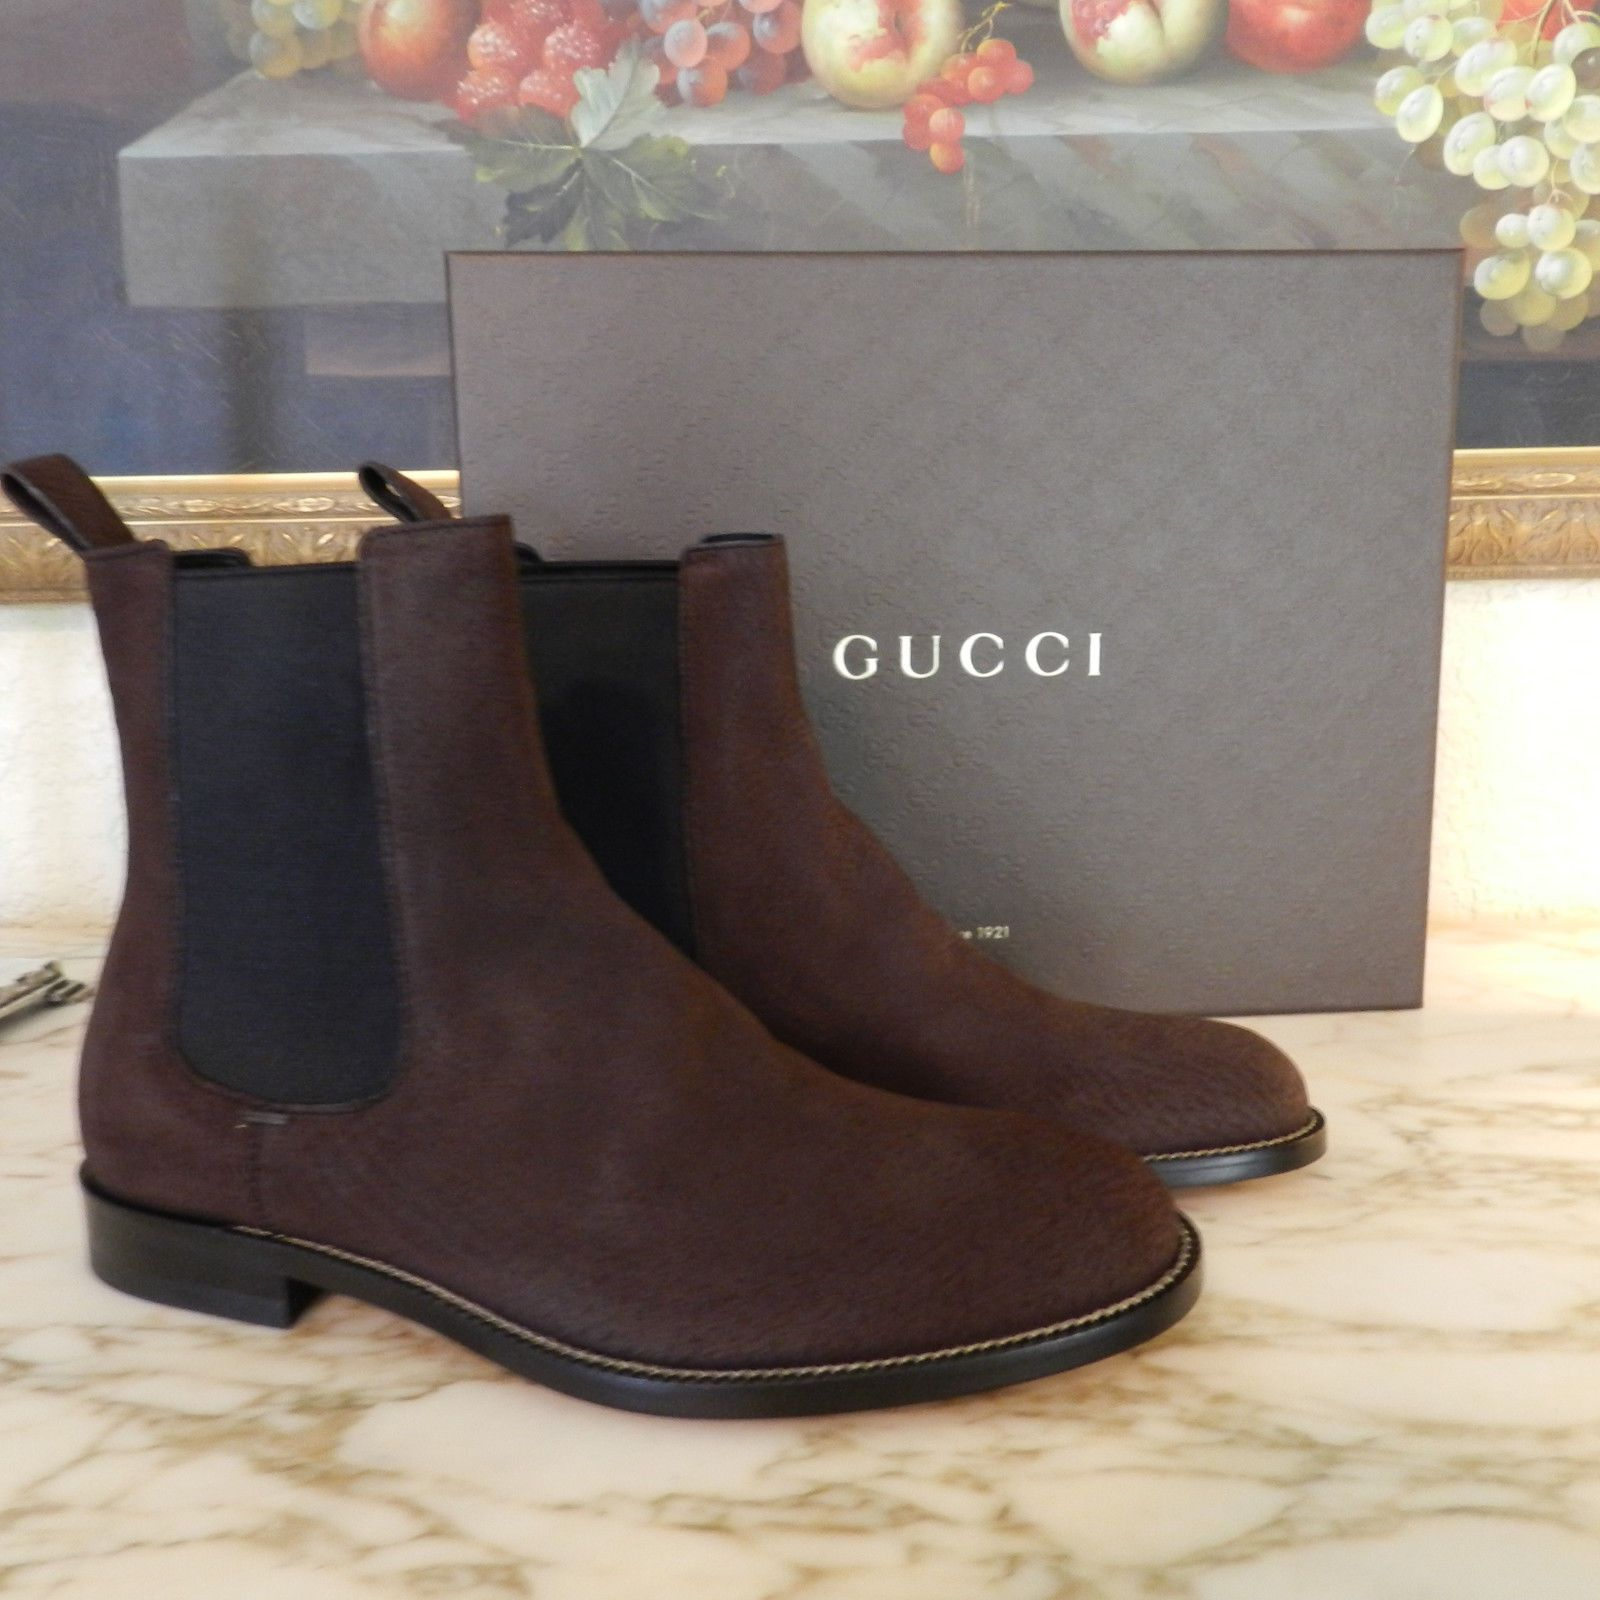 Gucci is a worldwide legend in designer fashion for men, renowned for its quality, prestige, and Italian legacy. With timeless style & iconic appeal, this suede leather boot will take your style to new heights. Check them out here at http://www.ebay.com/itm/191272198517?ssPageName=STRK%3AMESELX%3AIT&_trksid=p3984.m1555.l2649